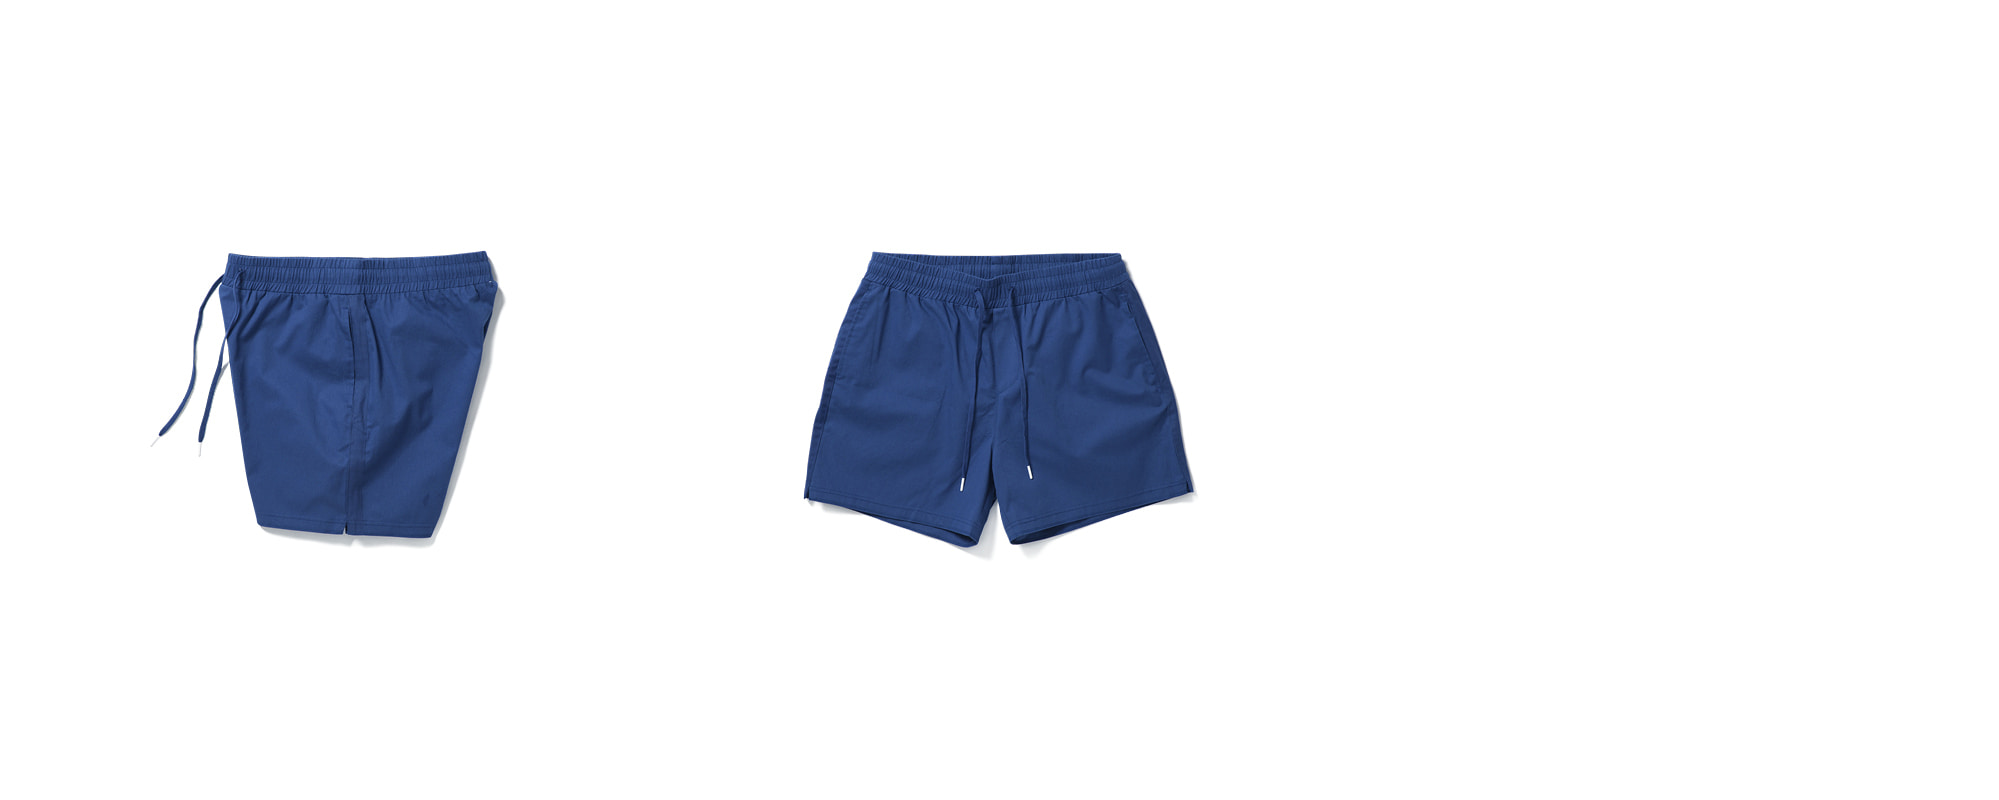 Double Shorts Blue